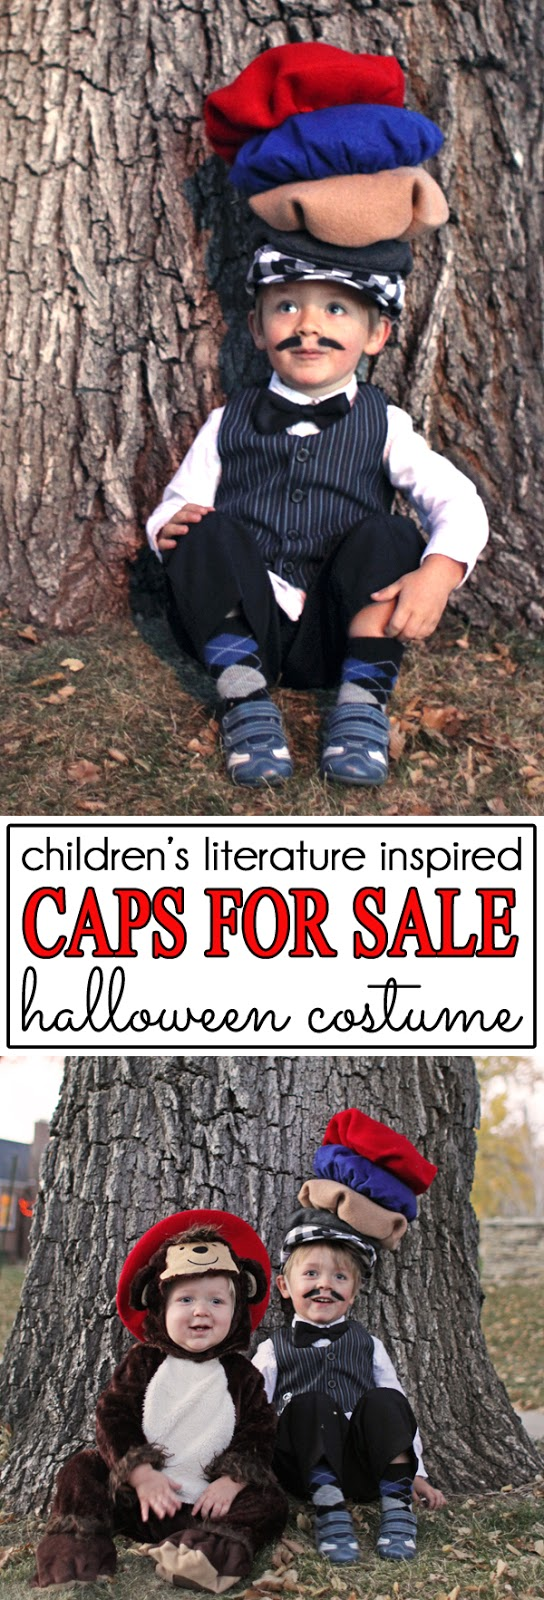 Caps for Sale Peddler Halloween Costume